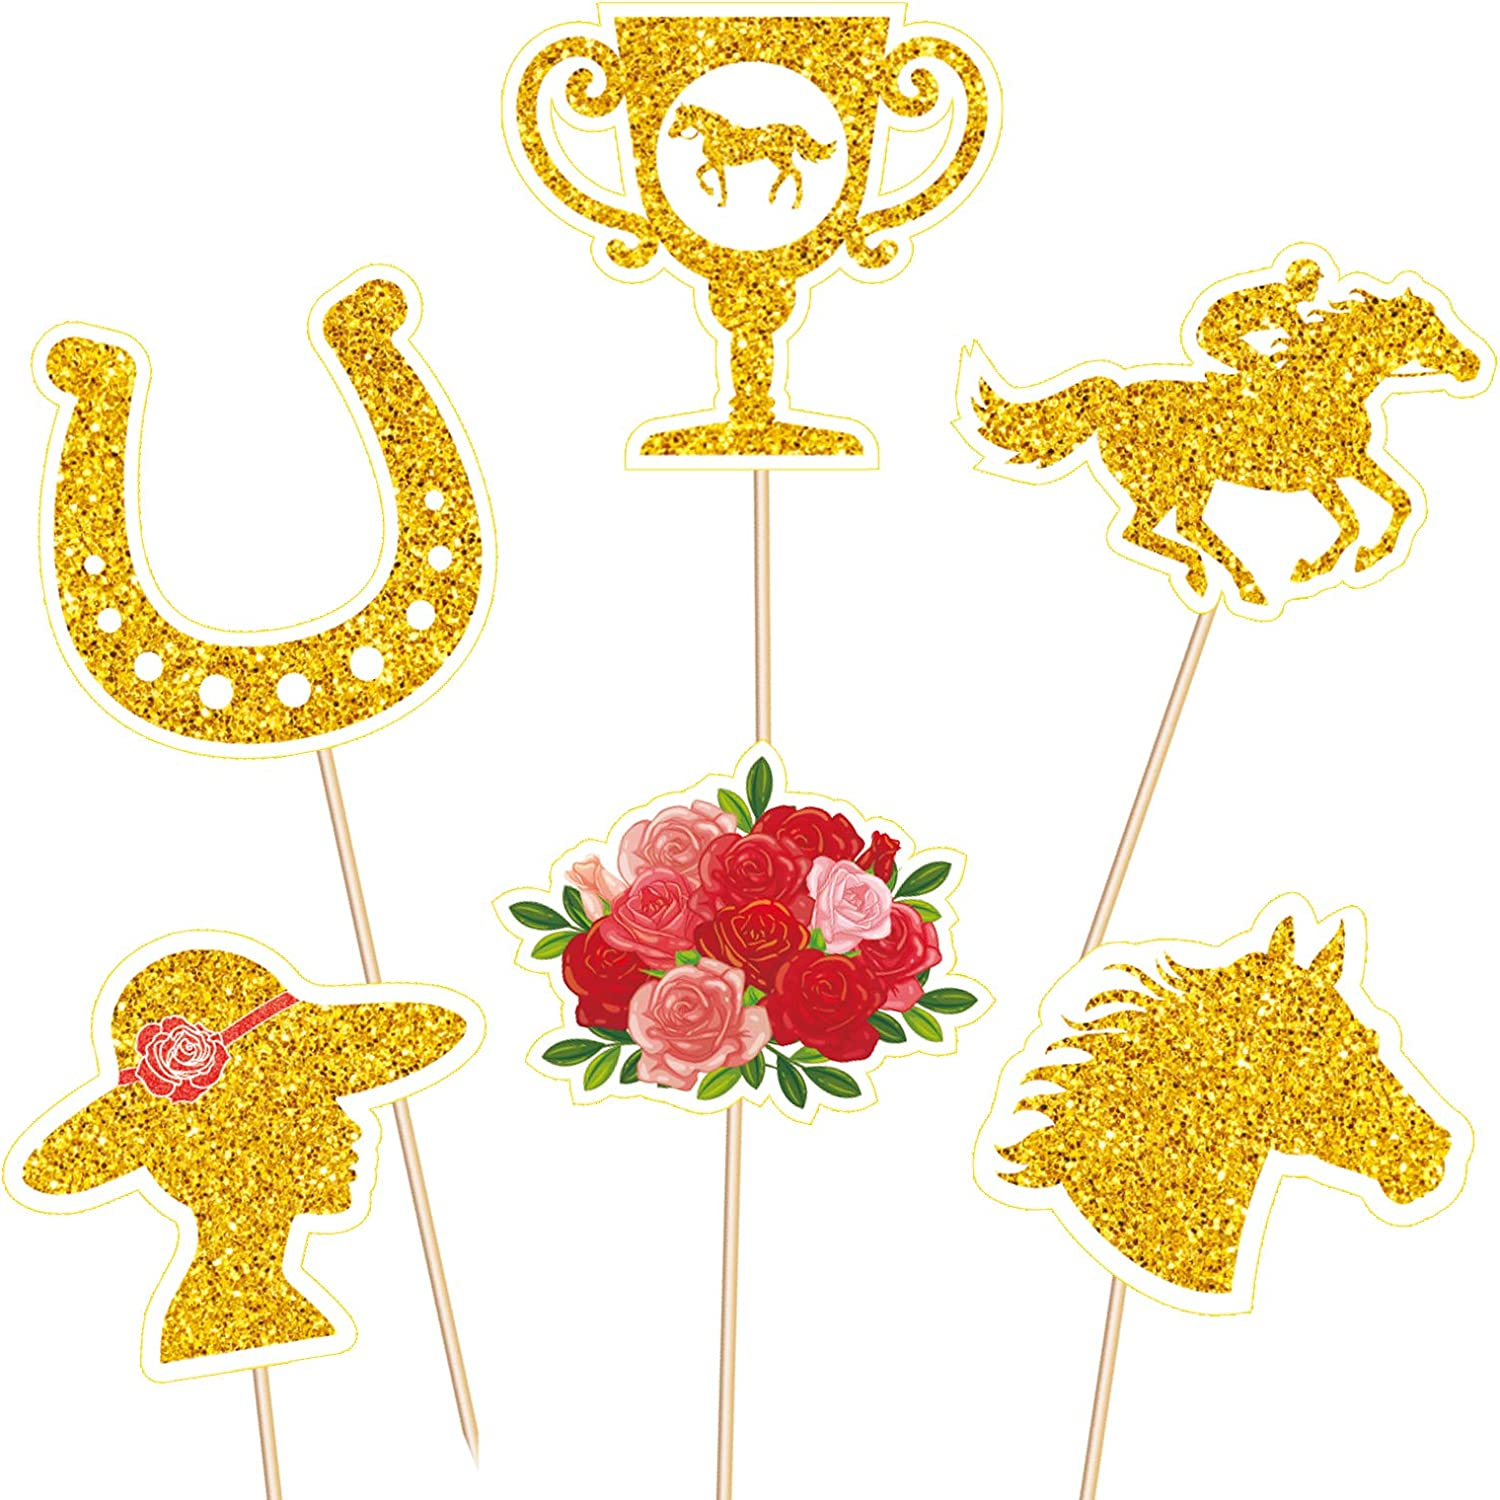 Kentucky Derby Cupcake Toppers Decorations Food Picks - Horse Racing Appetizers Toothpicks Sticks Party Supplies 144Ct